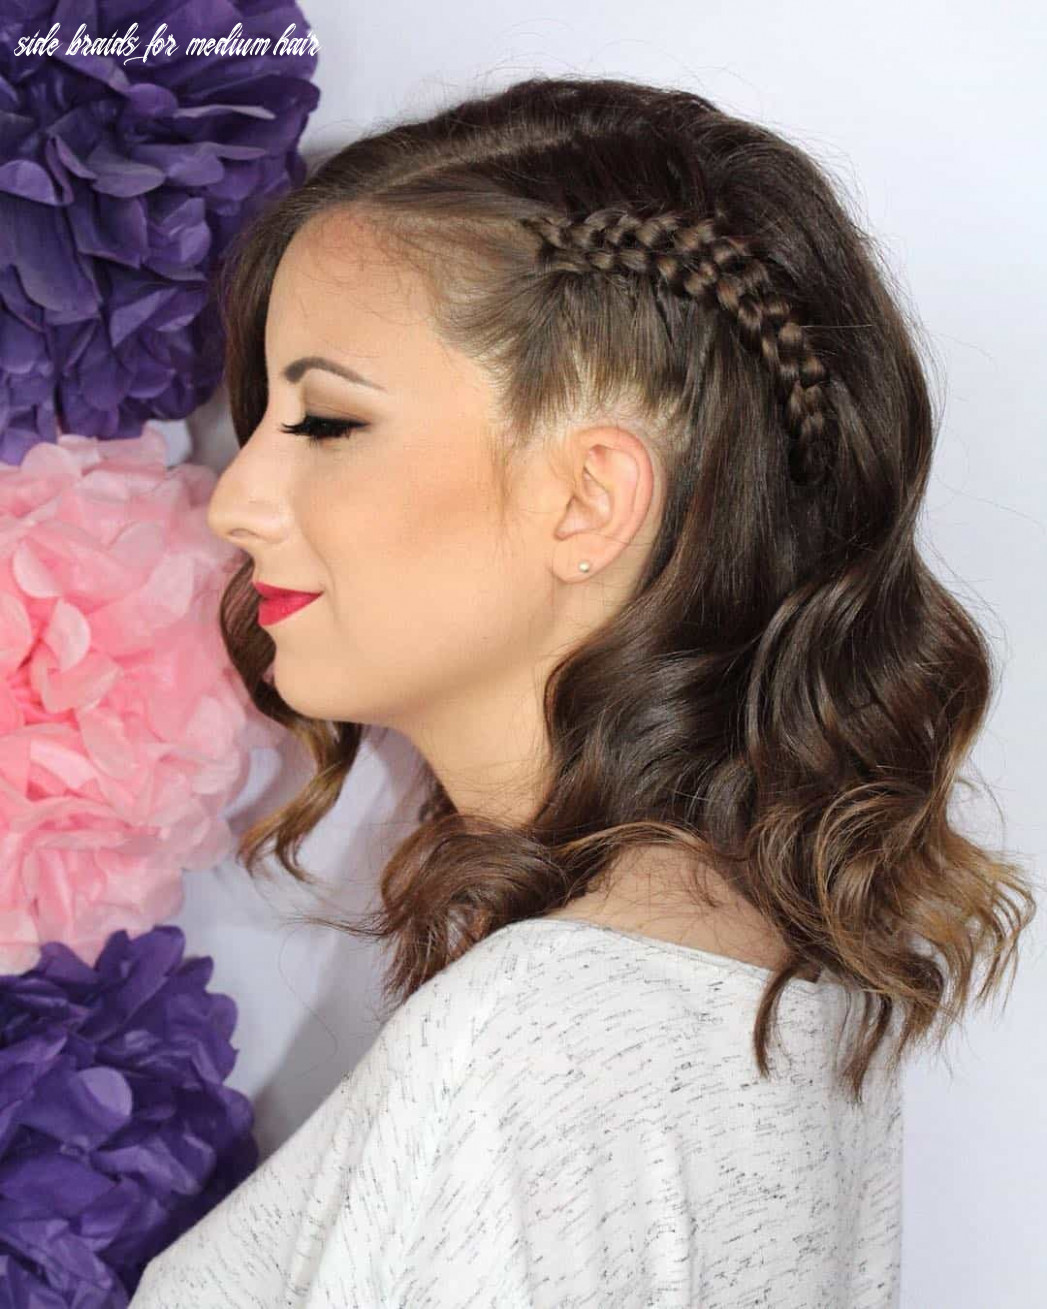 10 side braid hairstyles which are simply spectacular wild about